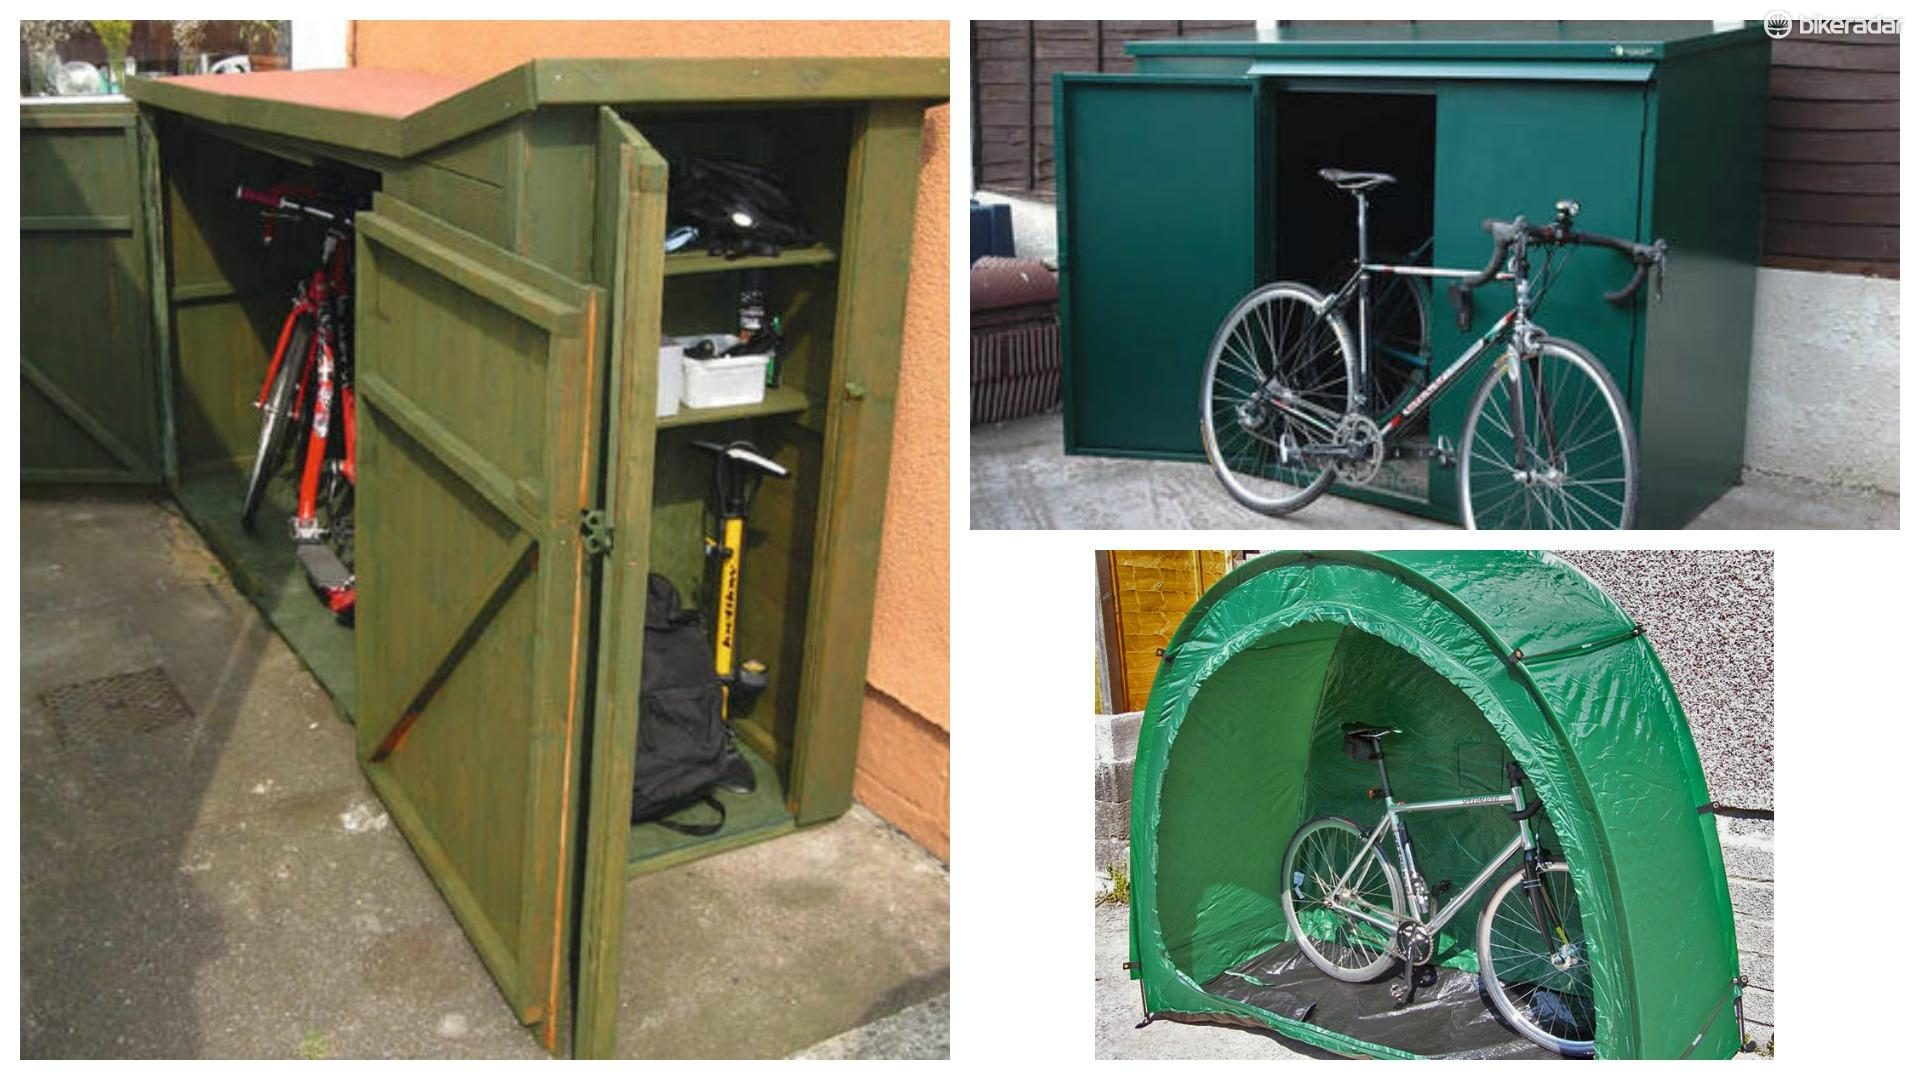 These standalone bike shelters are an option if you donu0027t have room for a & How to improve your bike shedu0027s security - BikeRadar